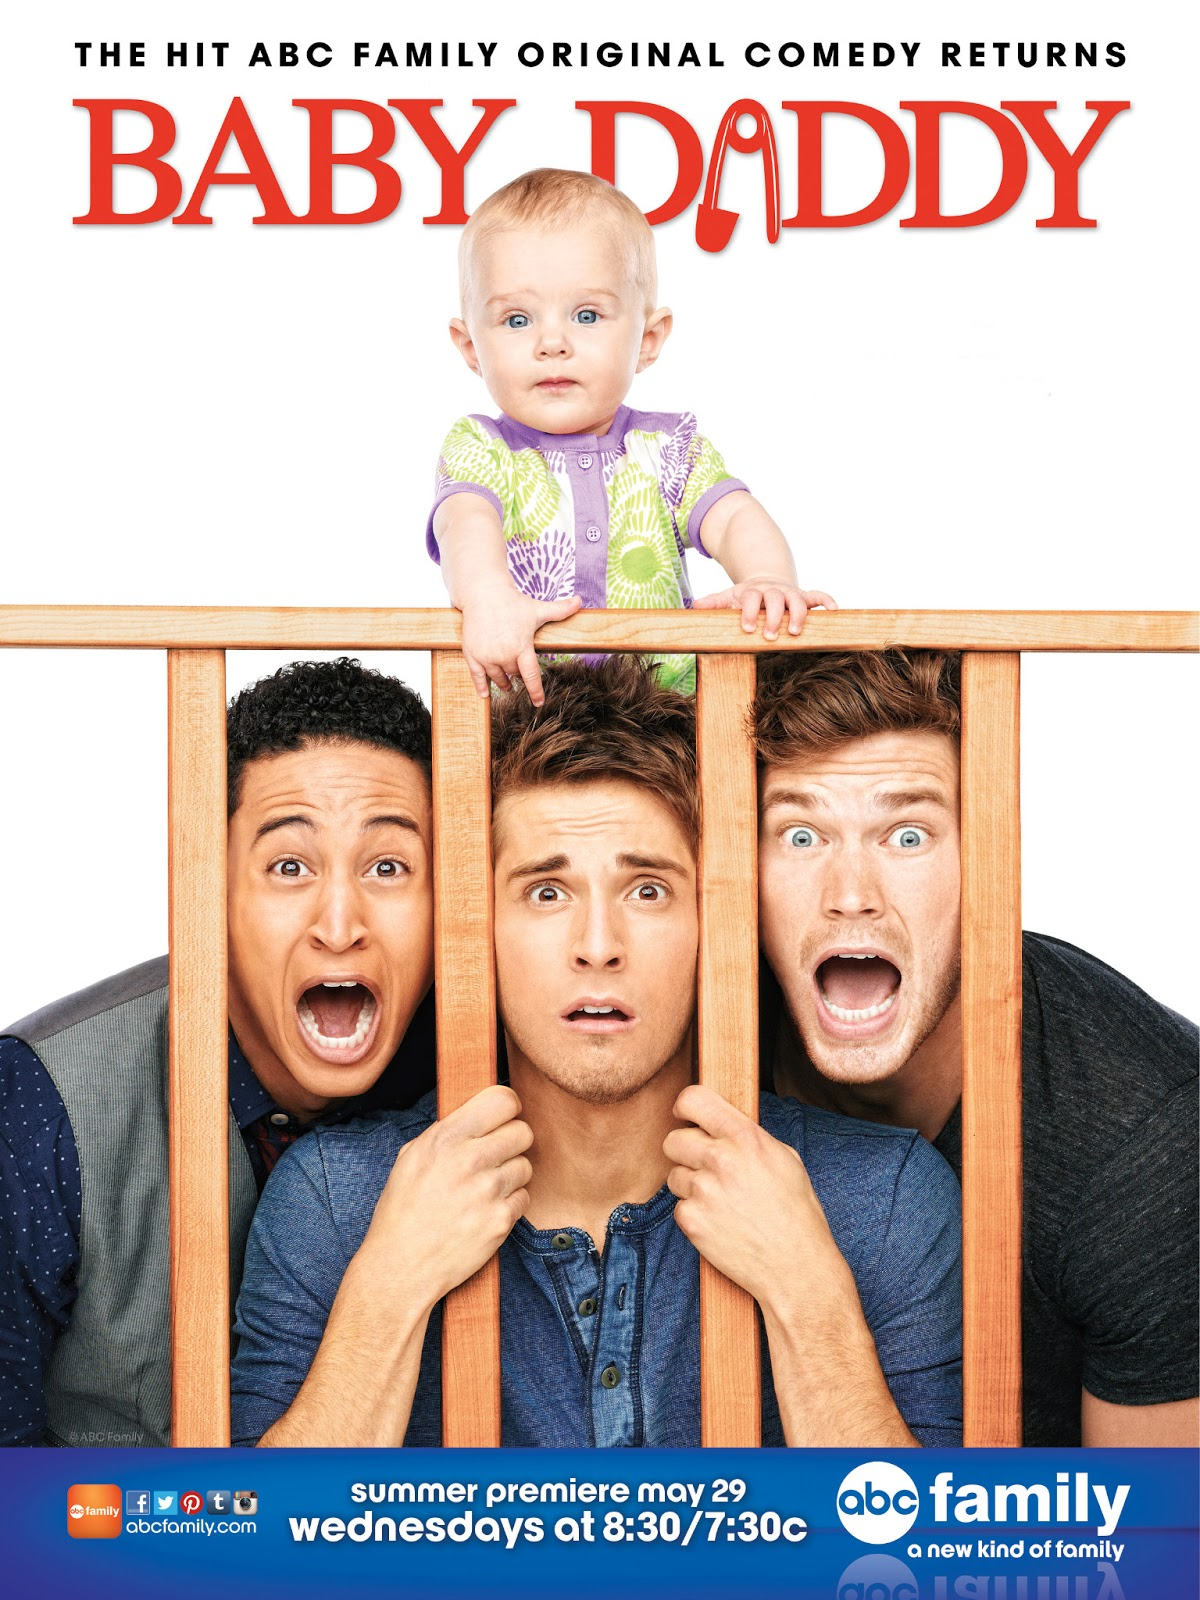 Download - Baby Daddy S02E05 HDTV 720p